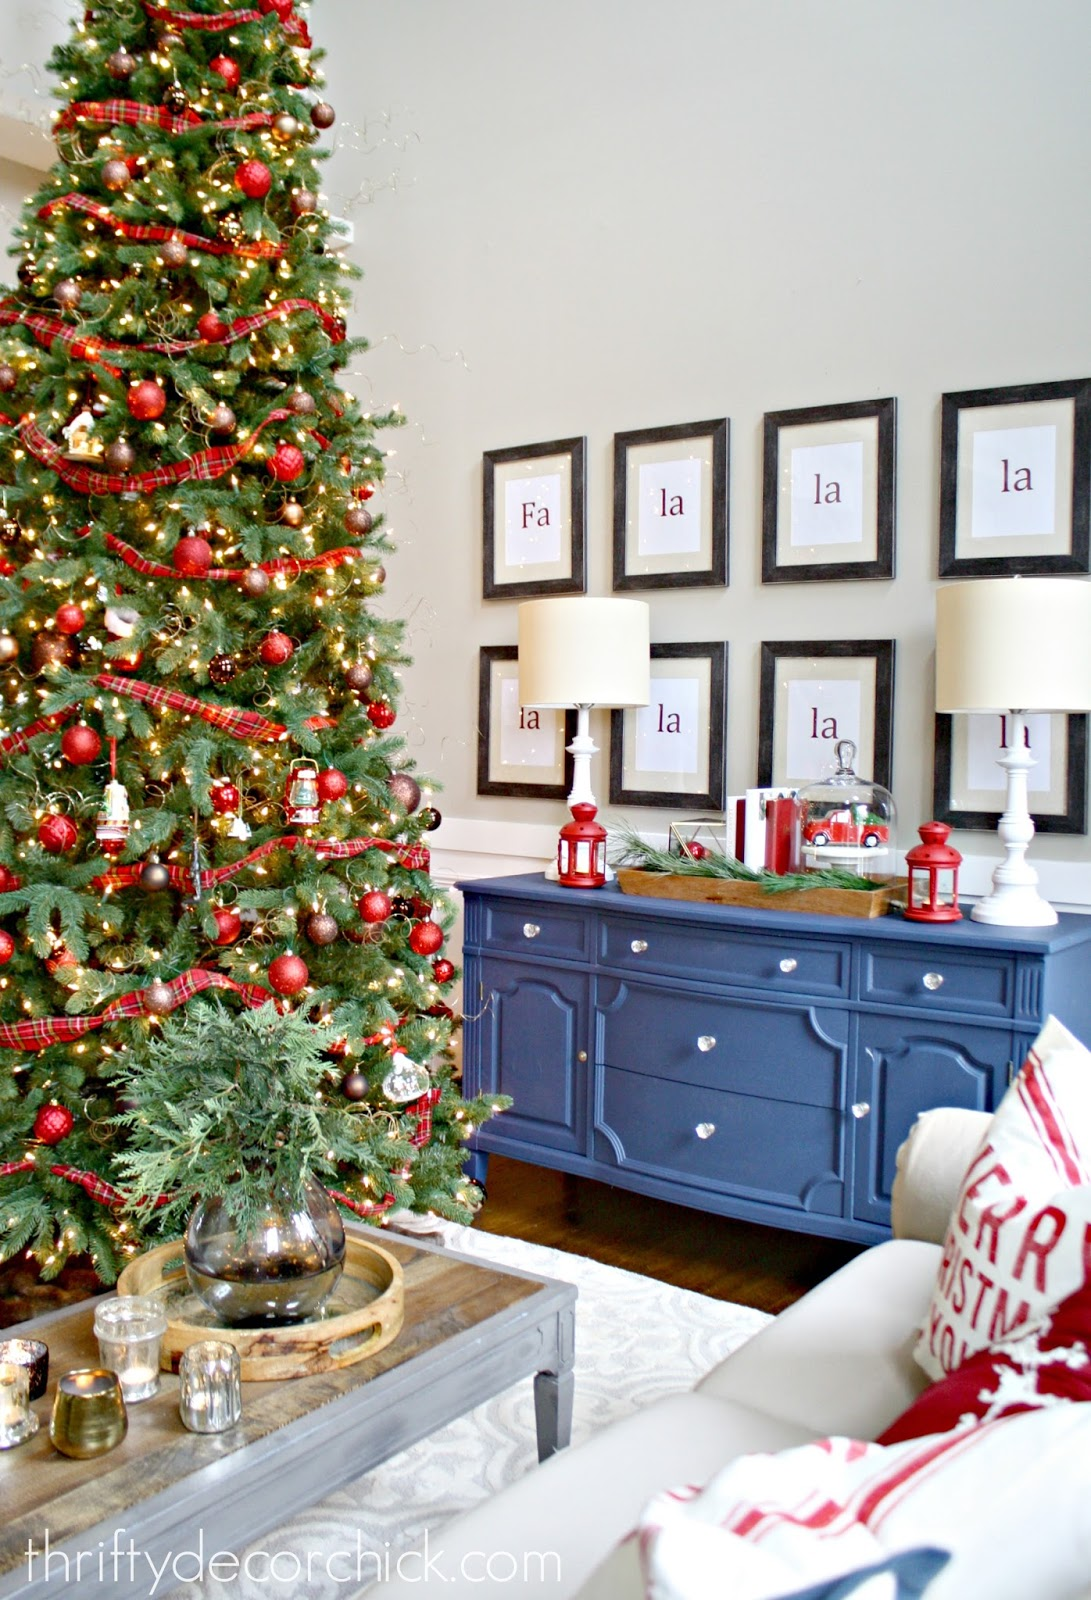 All The Wonderful Christmas Tree Ideas You Need For A Wonderful Holiday images 12